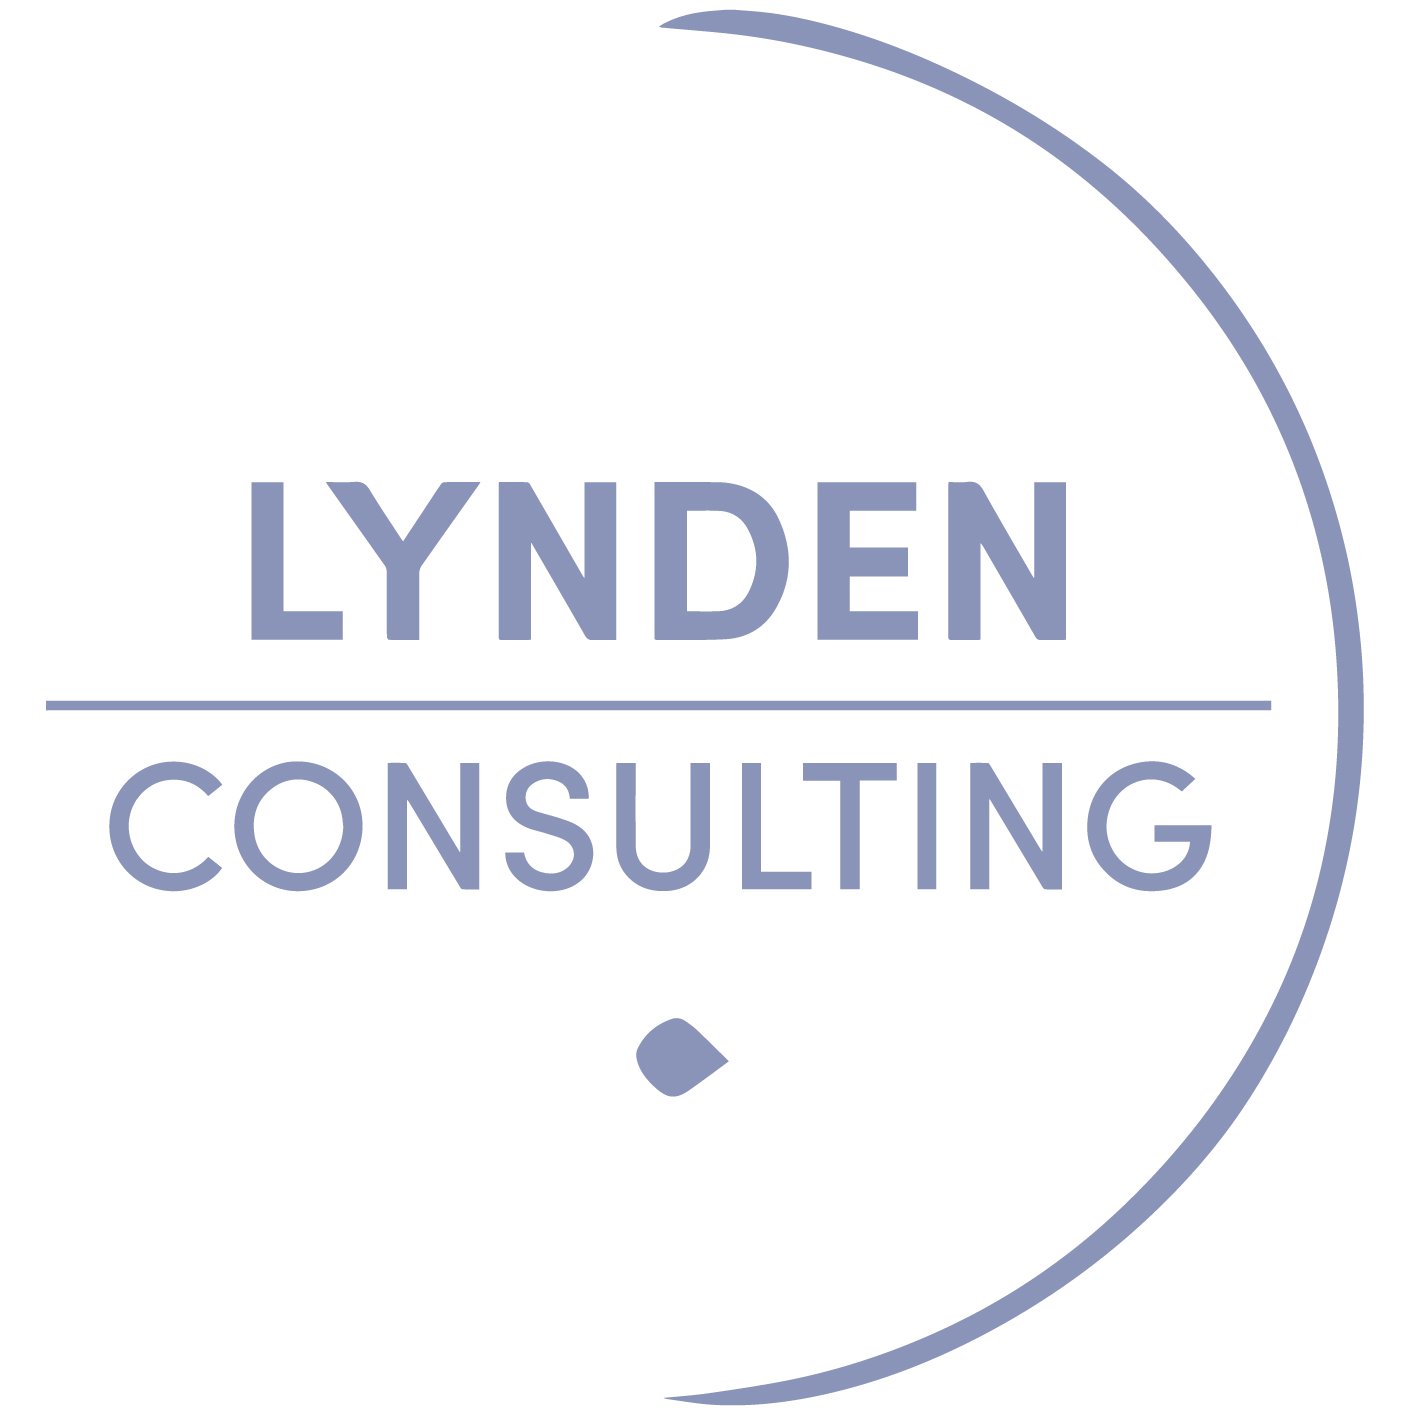 Lynden Consulting